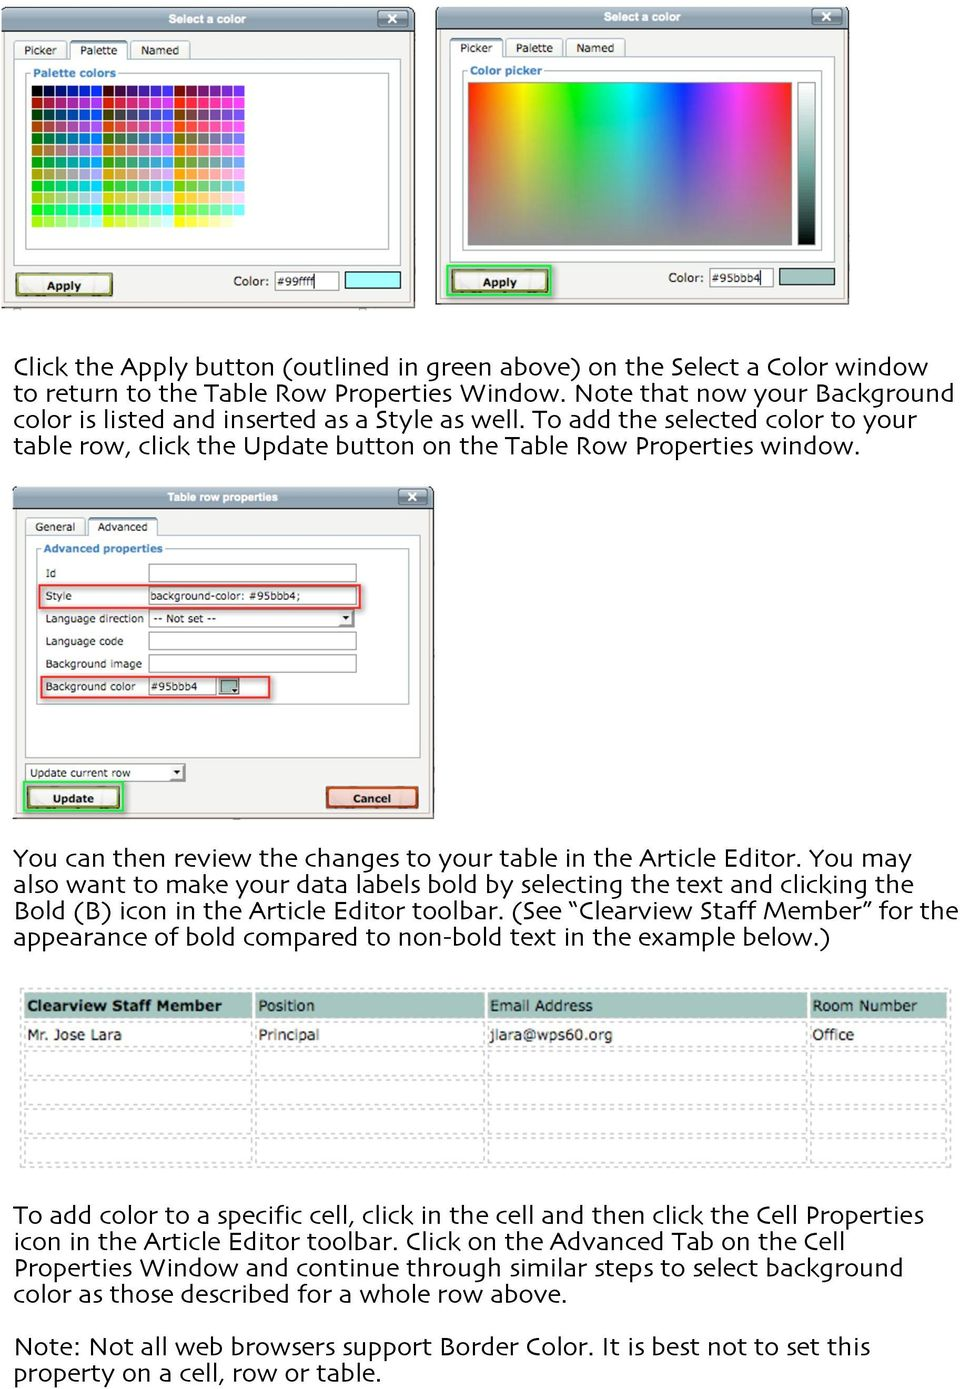 You can then review the changes to your table in the Article Editor. You may also want to make your data labels bold by selecting the text and clicking the Bold (B) icon in the Article Editor toolbar.